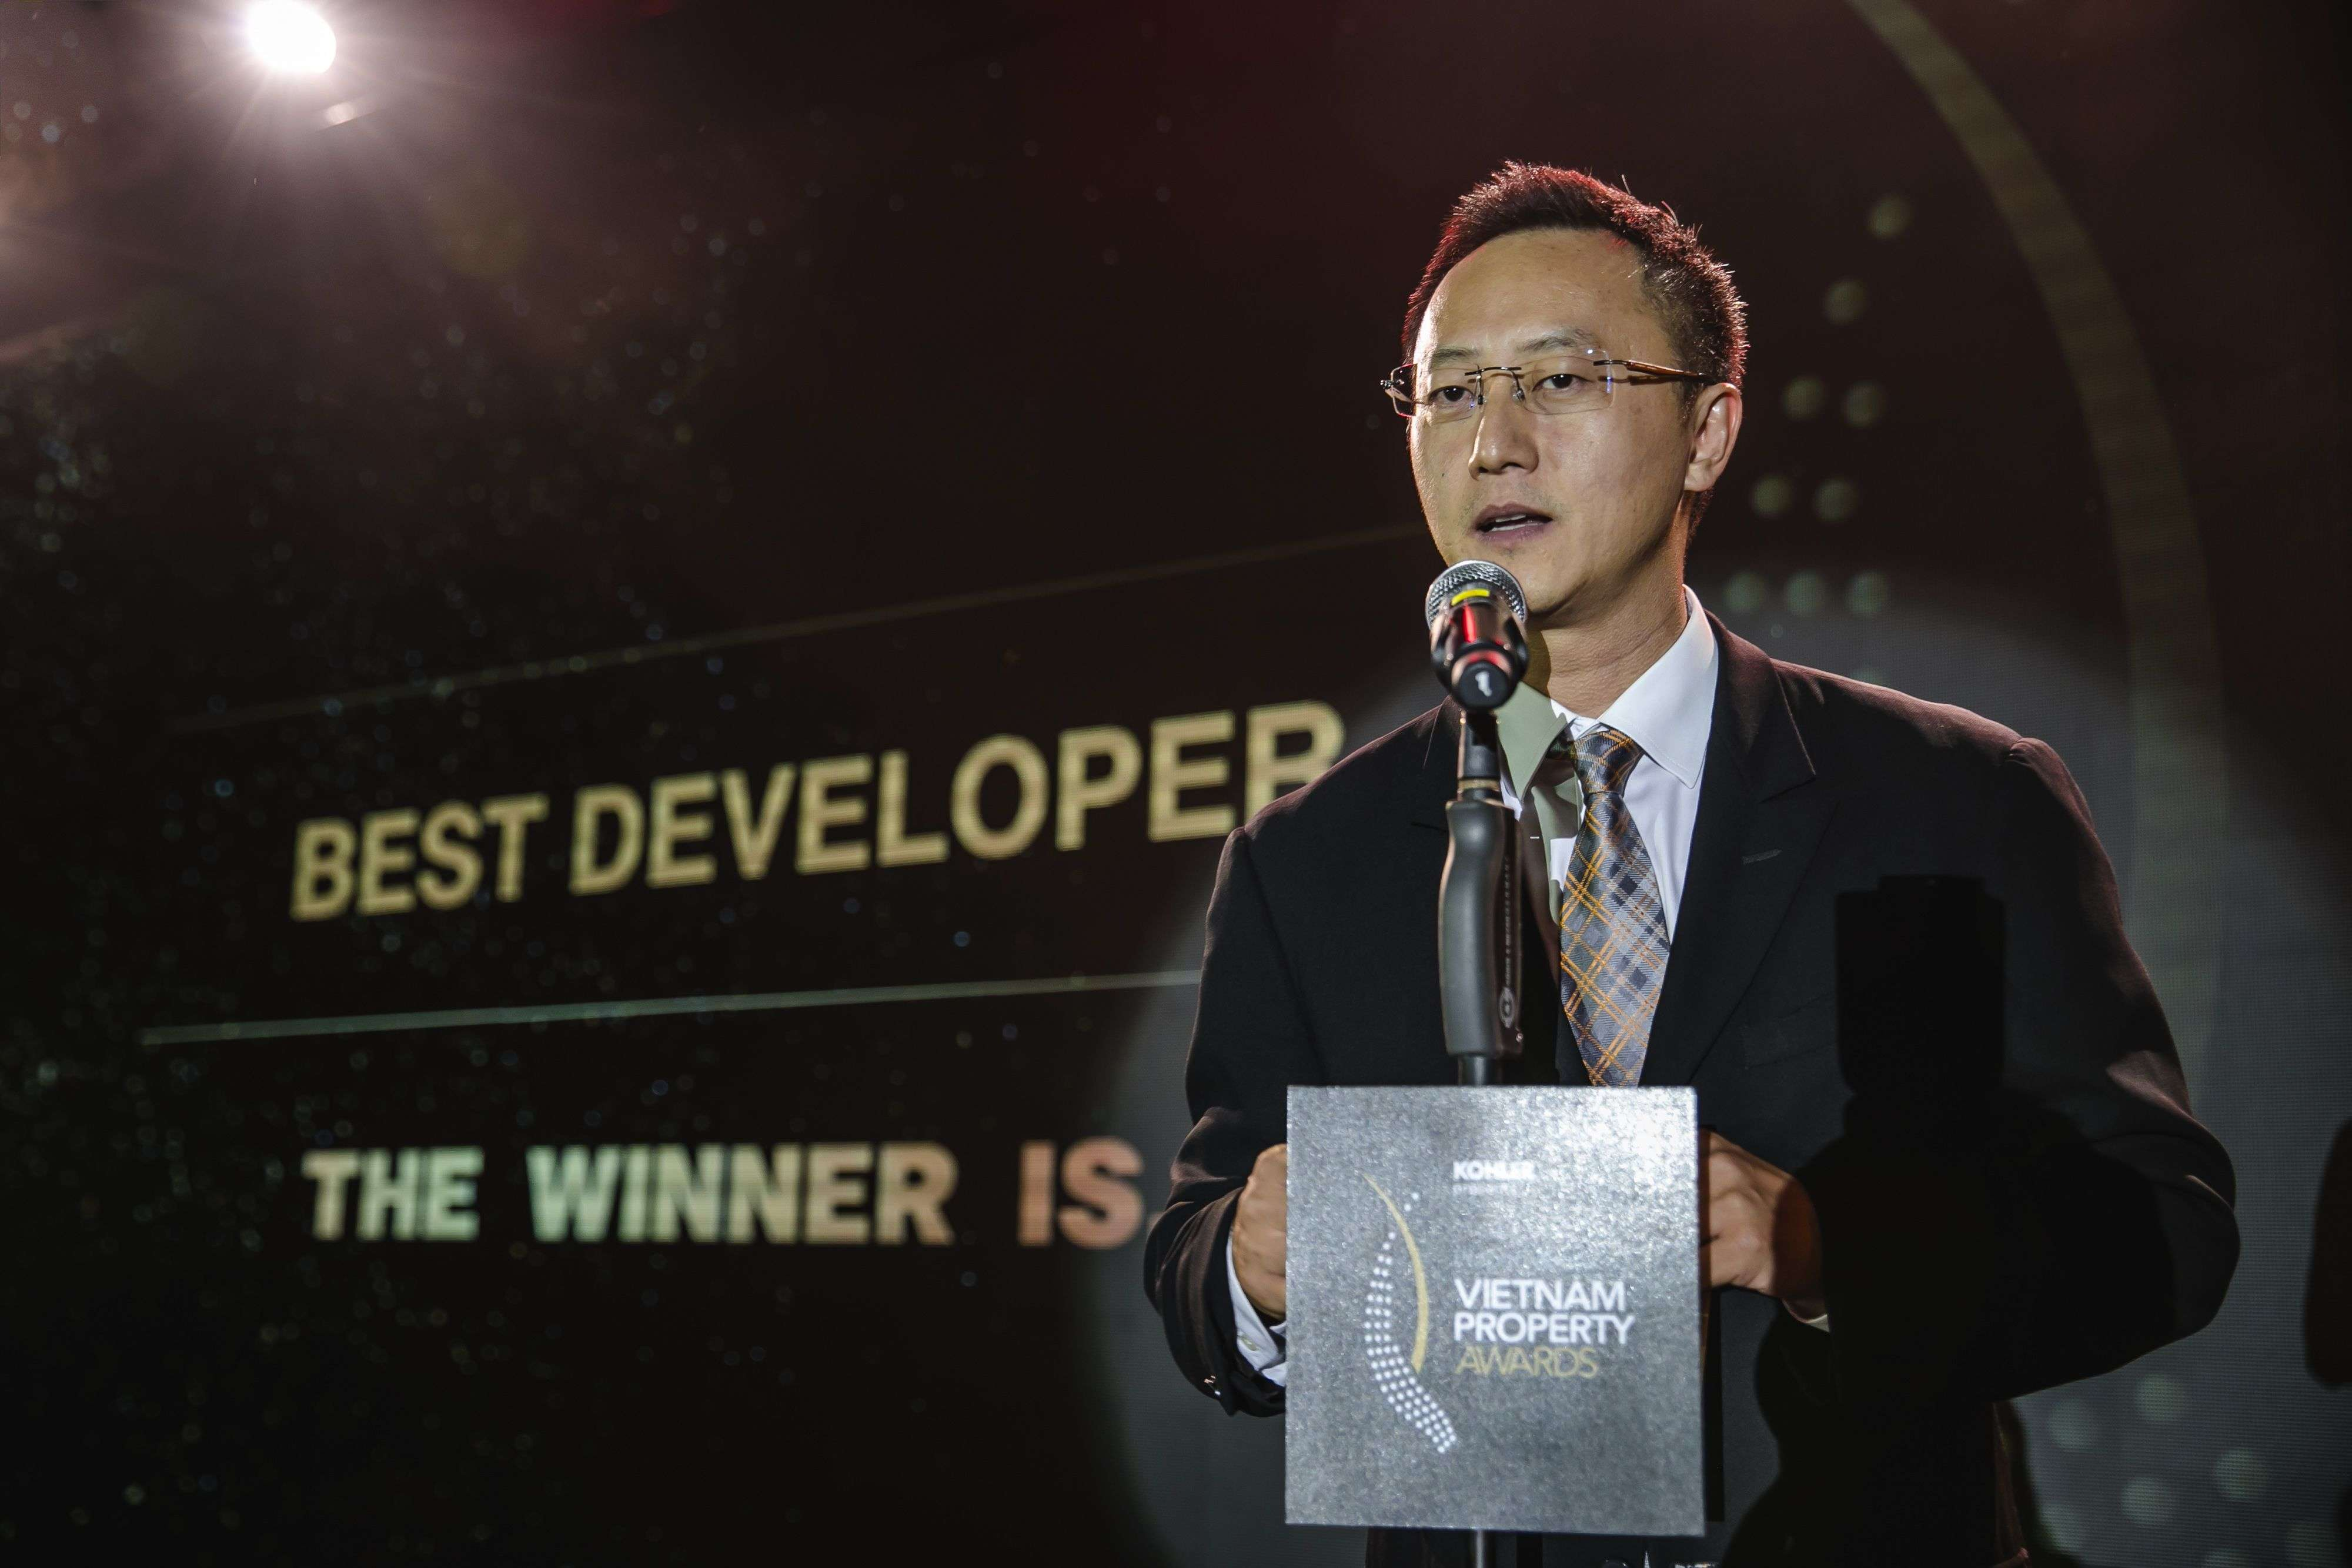 Transform Architecture's Thien Duong at last year's PropertyGuru Vietnam Property Awards